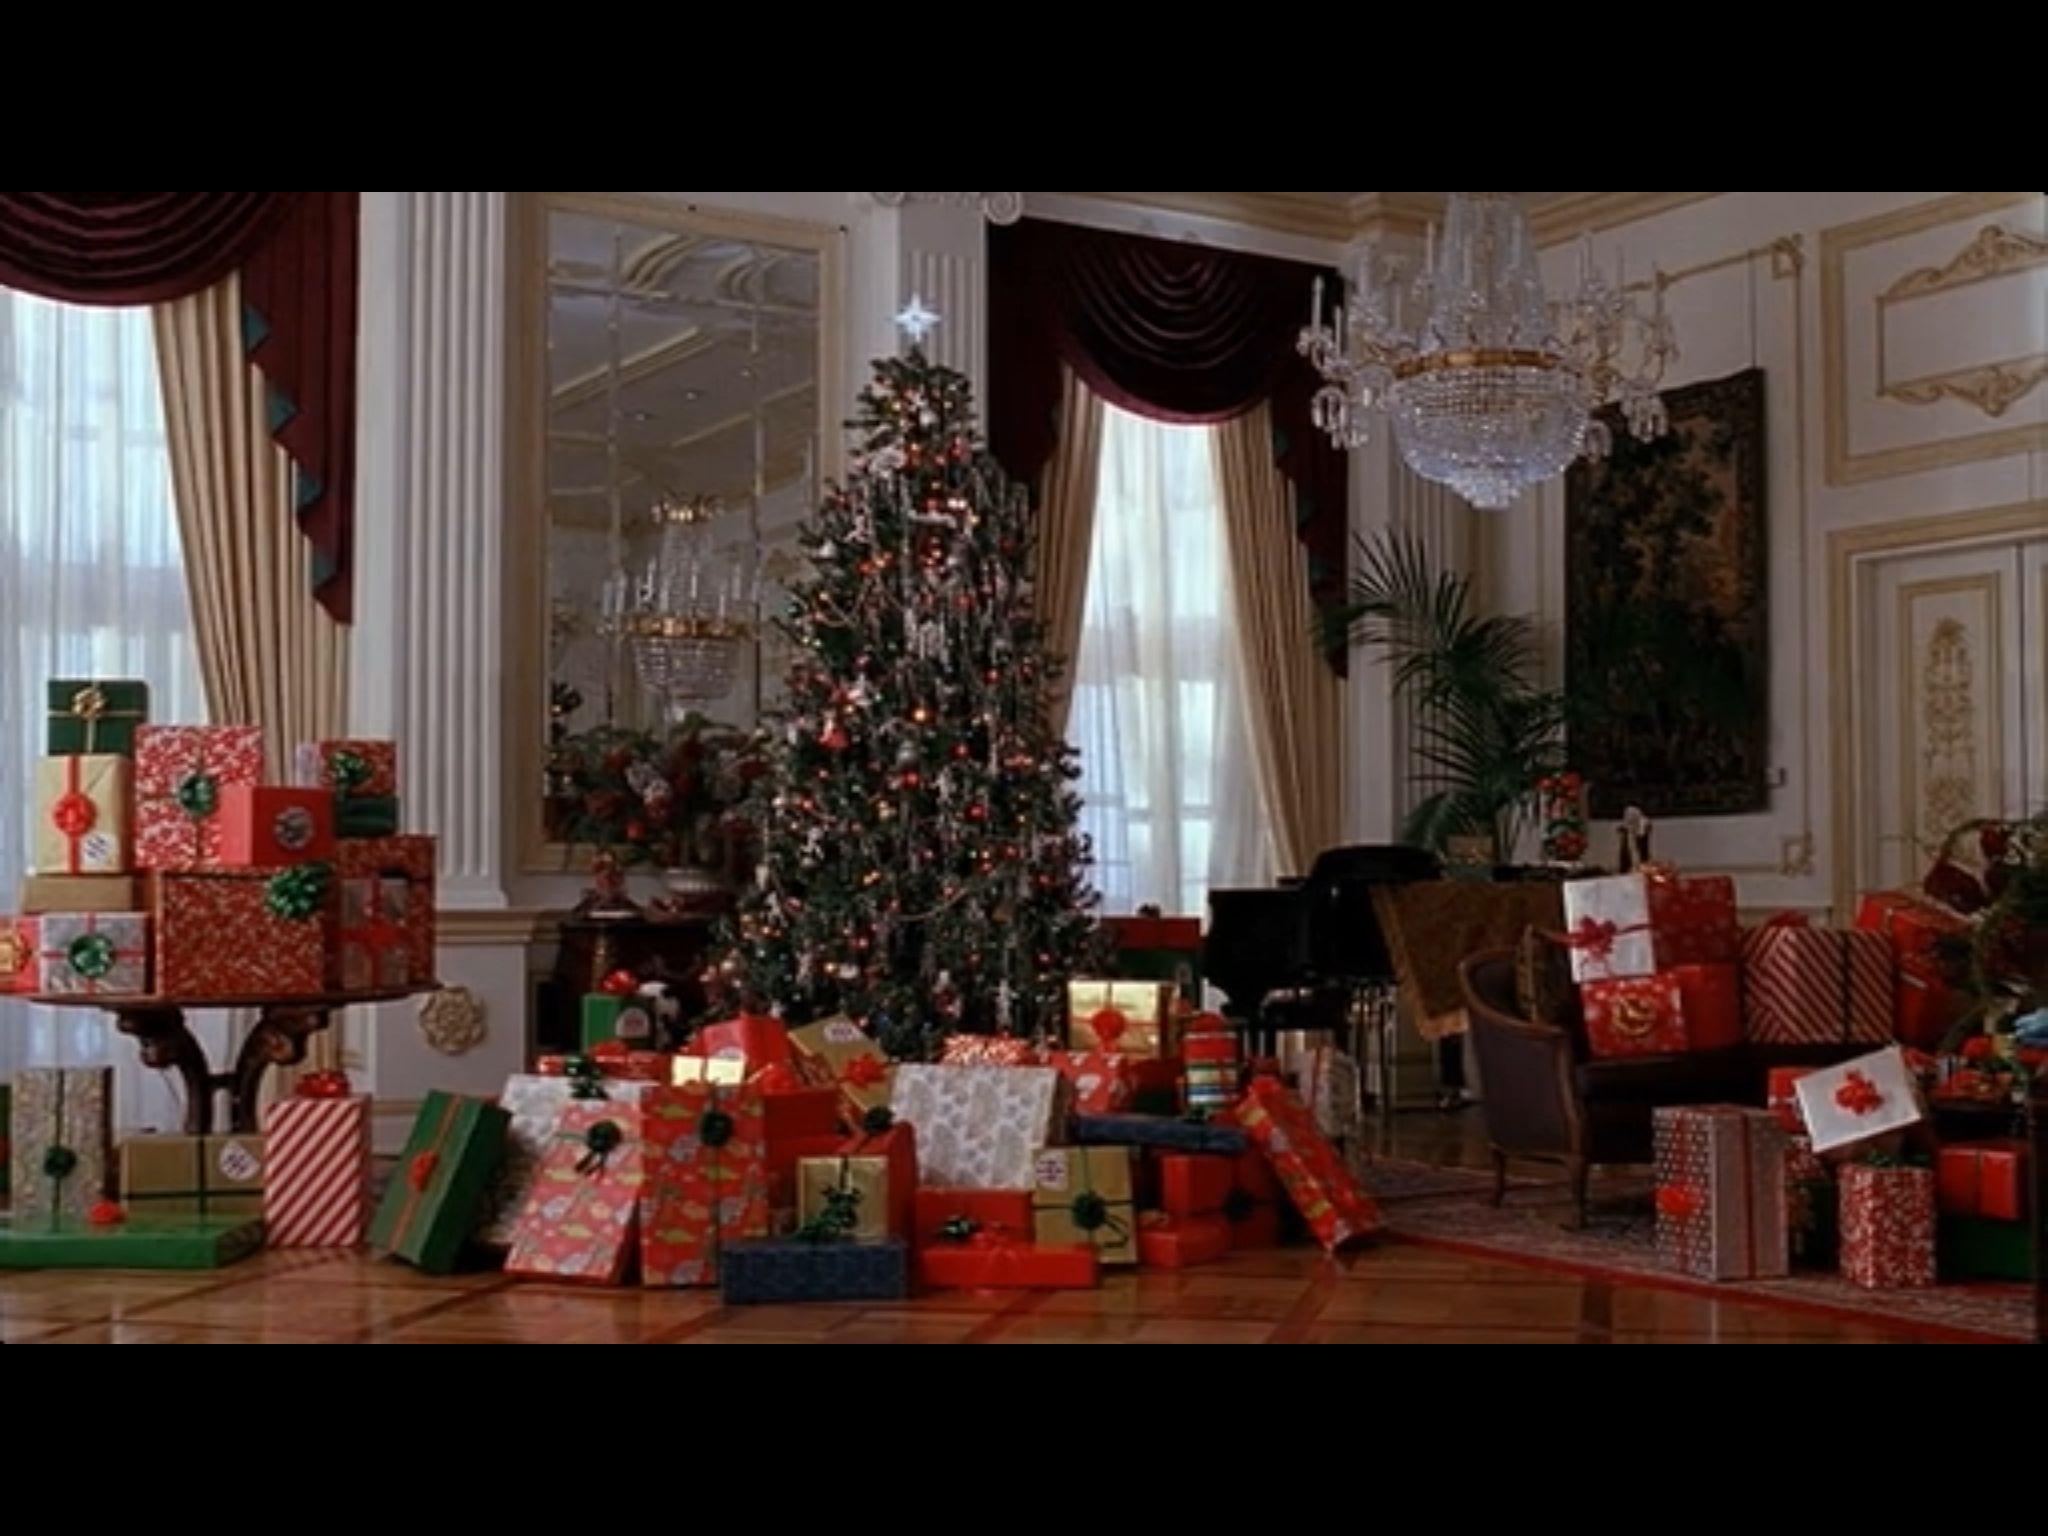 Home Alone2 Christmas Morning New York Home Alone Christmas Christmas Decorations Christmas Interiors